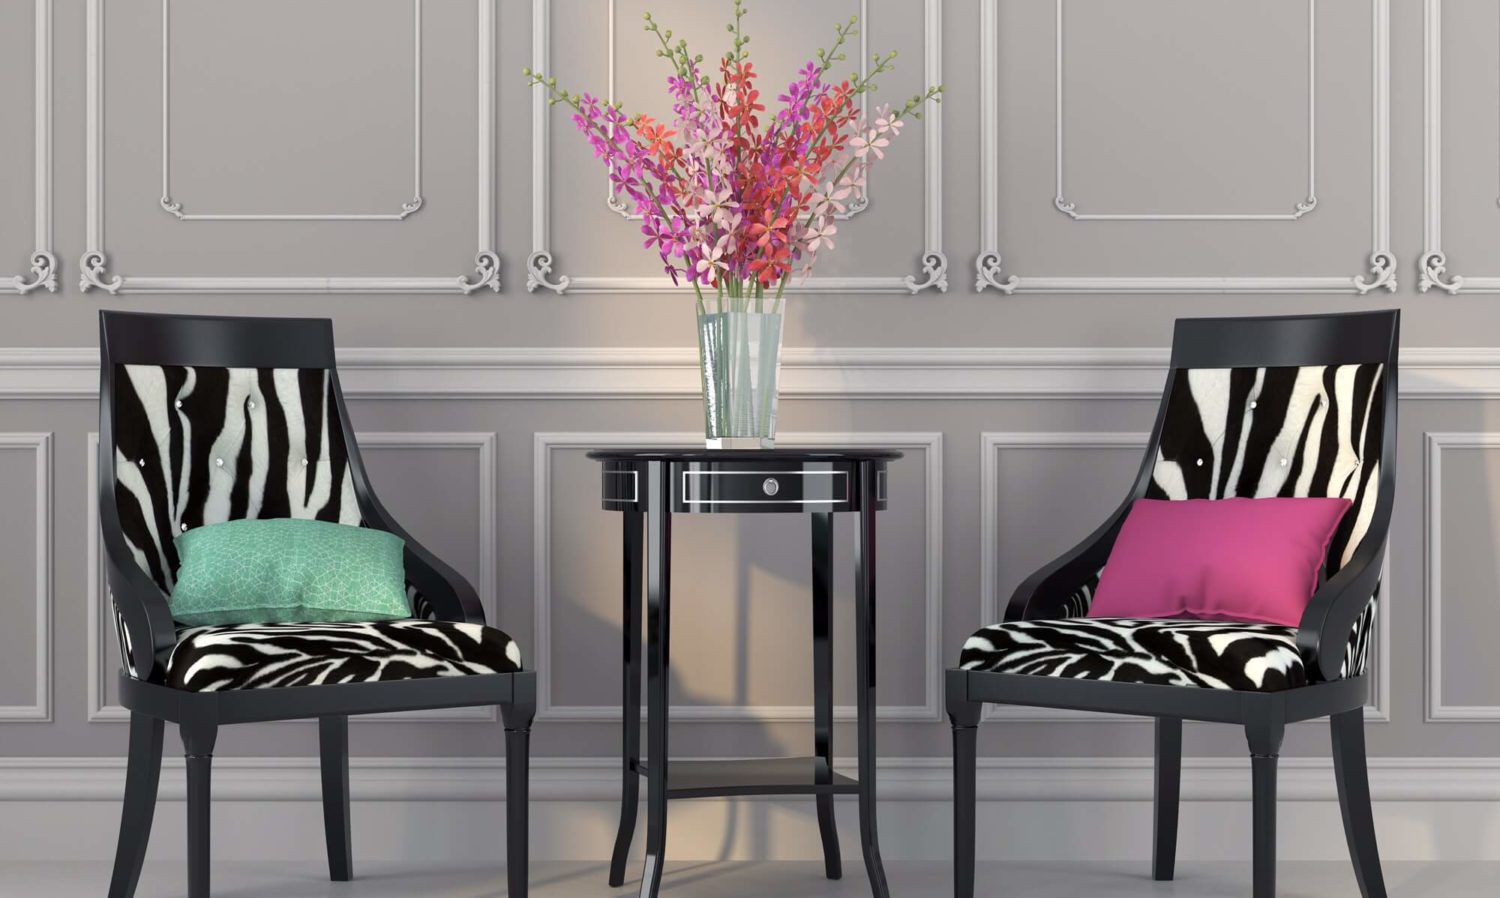 interior design home staging. LET US TURN YOUR TALENT INTO A CAREER Home Staging Classes  Color Interior Decorating